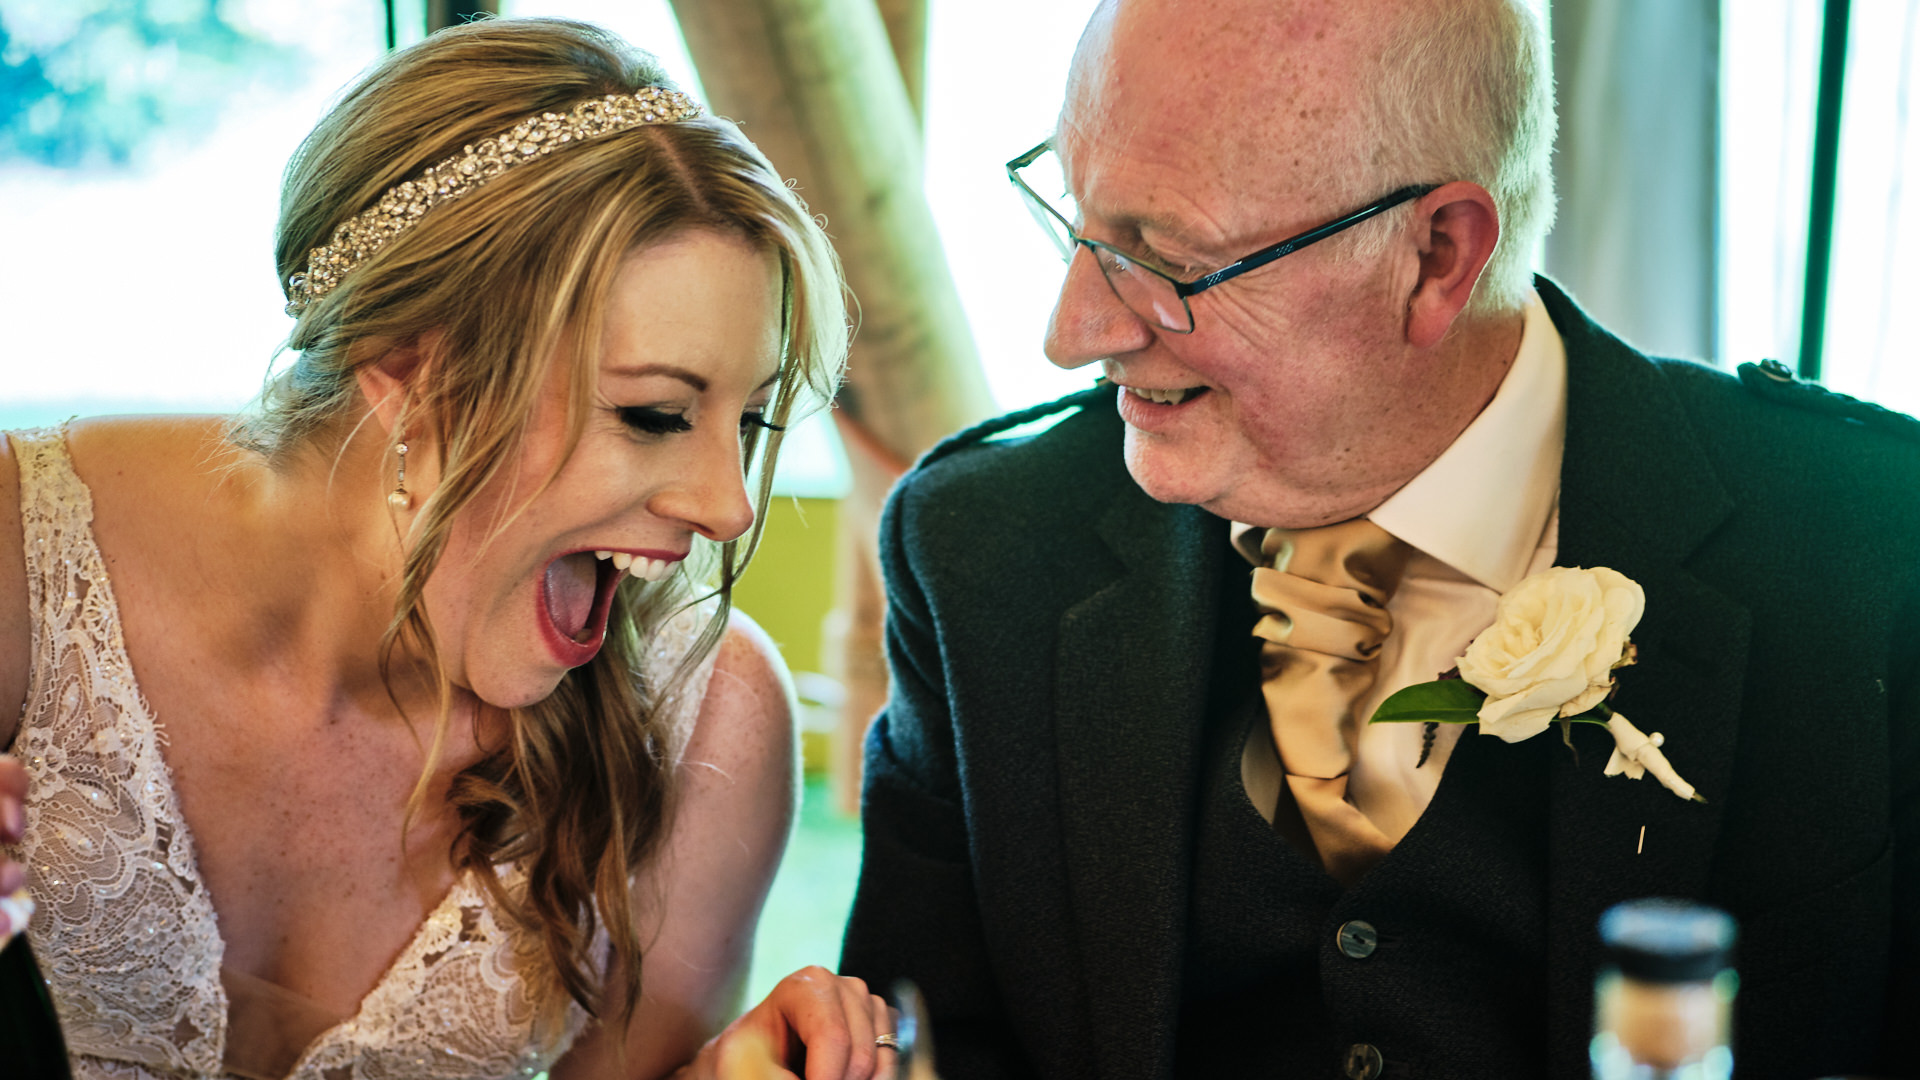 colour photograph of a bride and her dad sharing a joke during a speech at her wedding